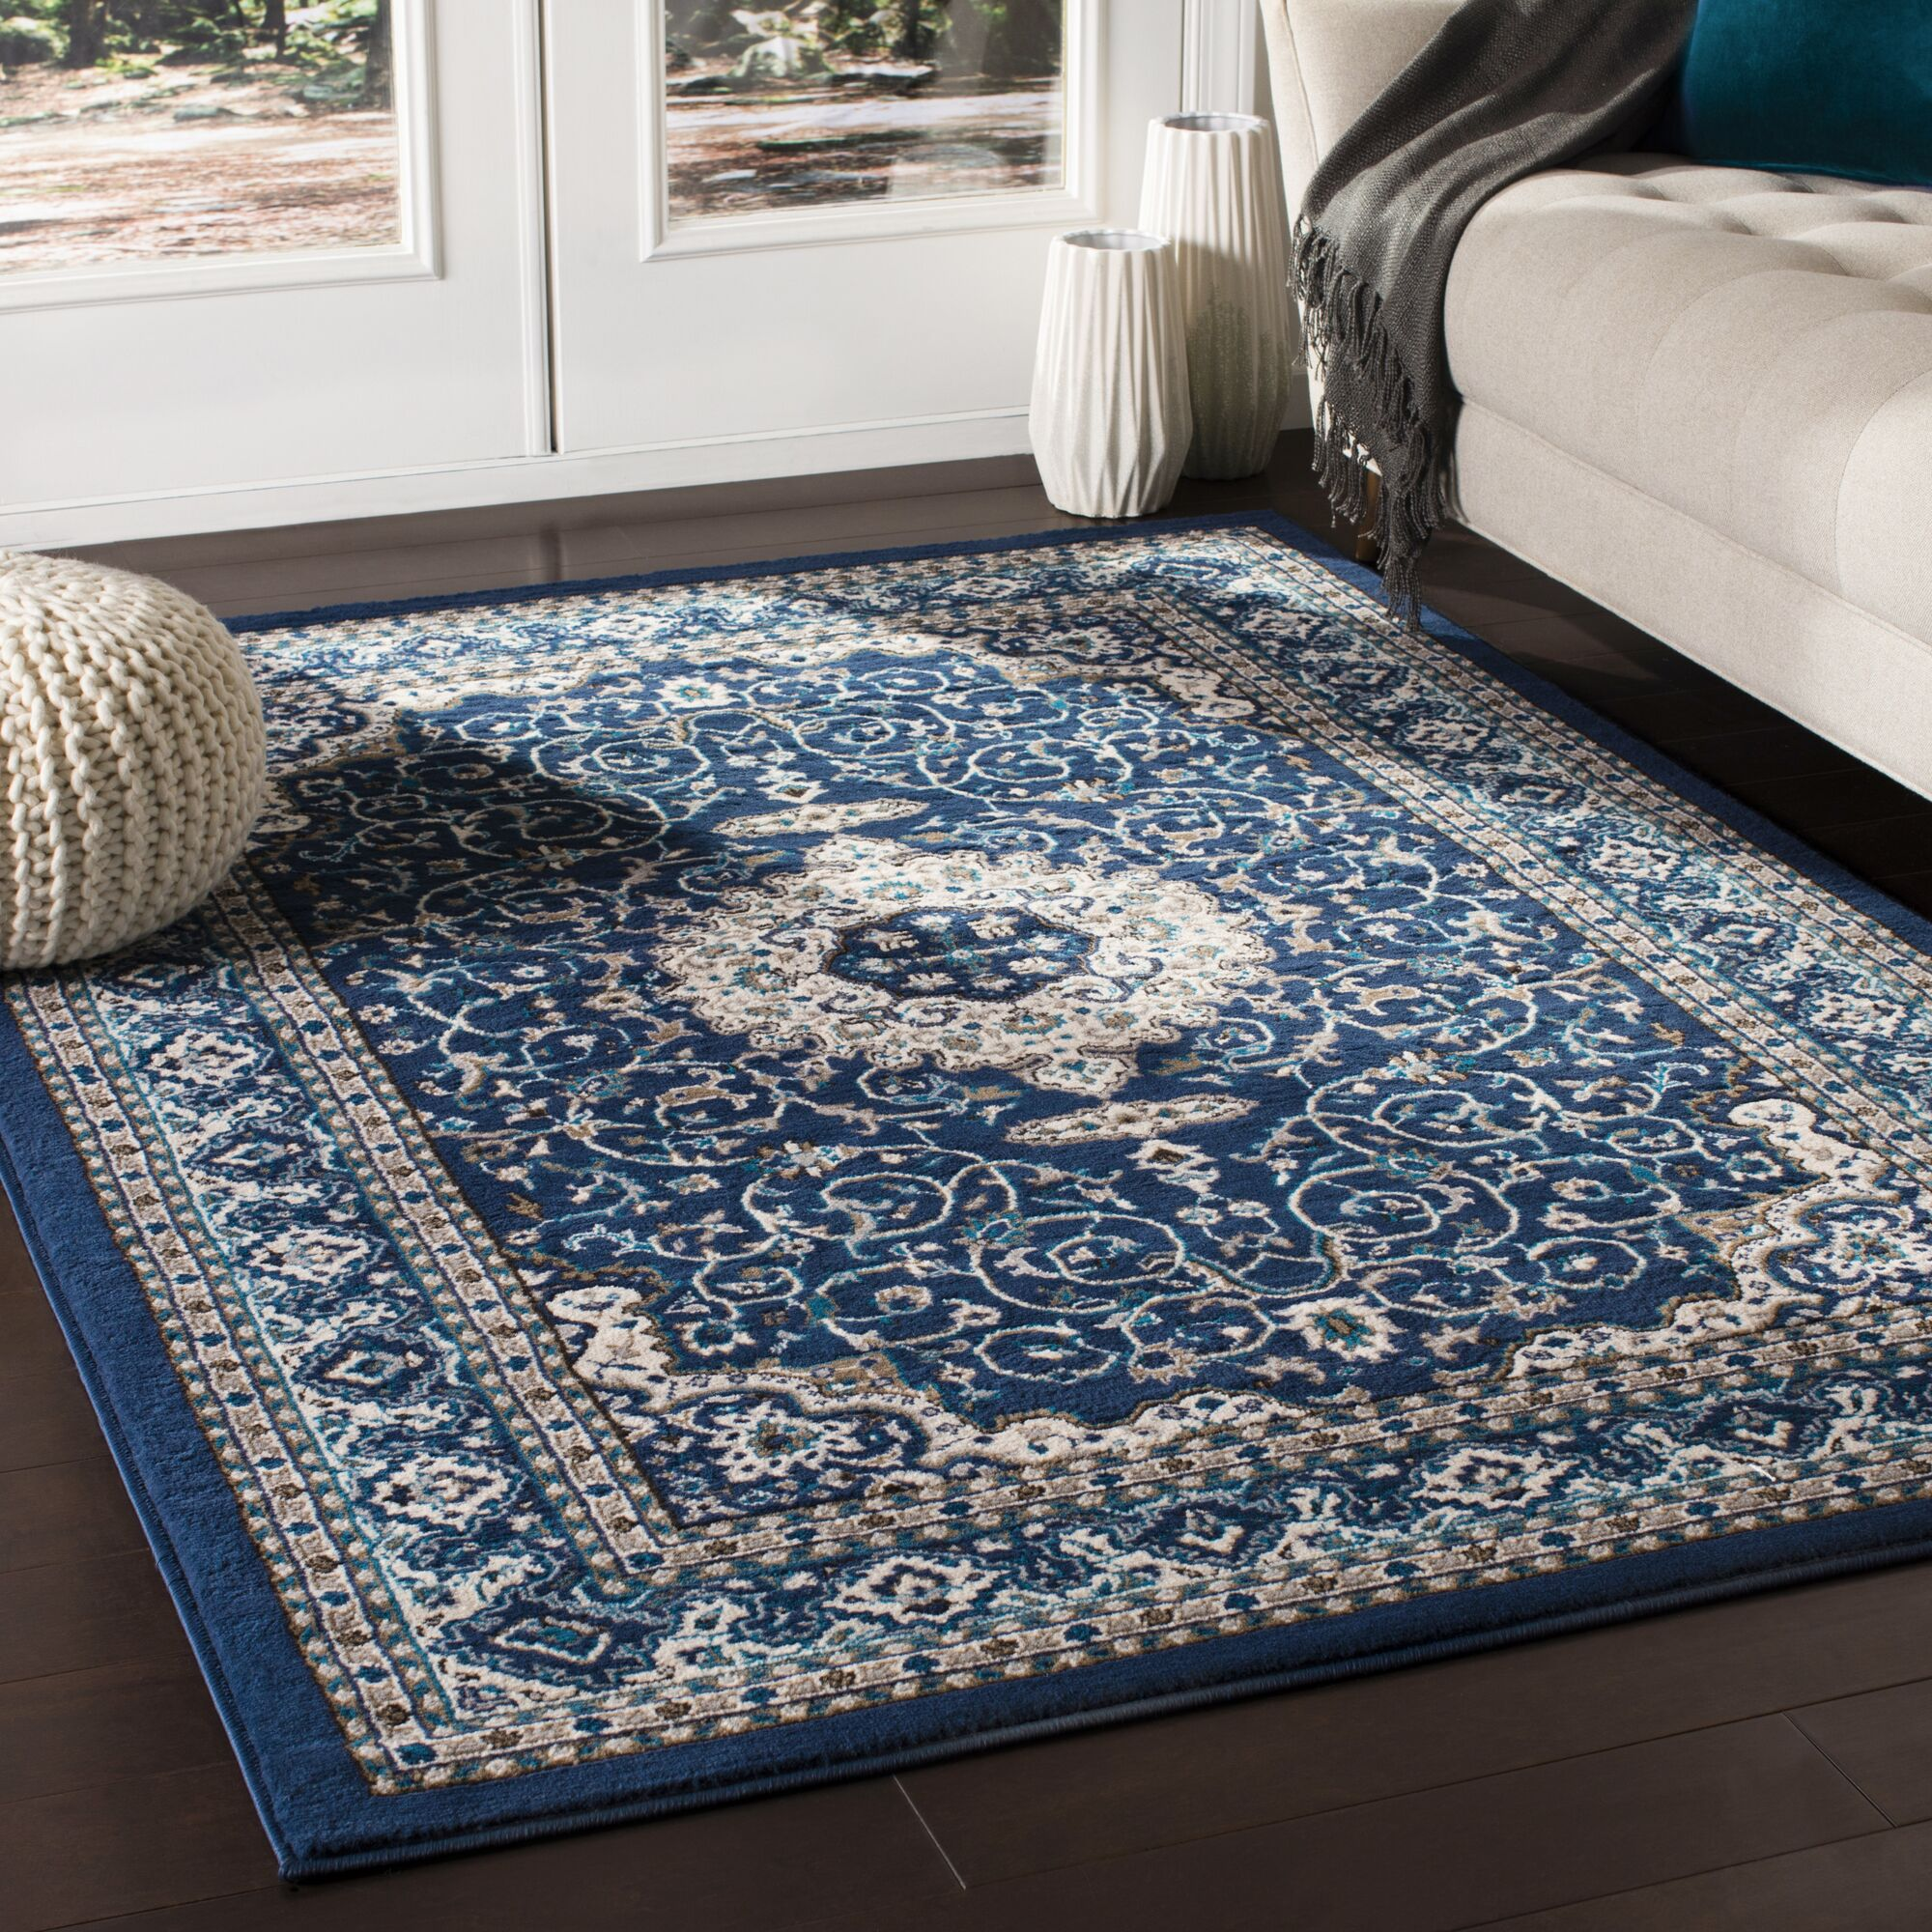 Kent Traditional Navy/Sky Blue Area Rug Rug Size: Rectangle 7'10